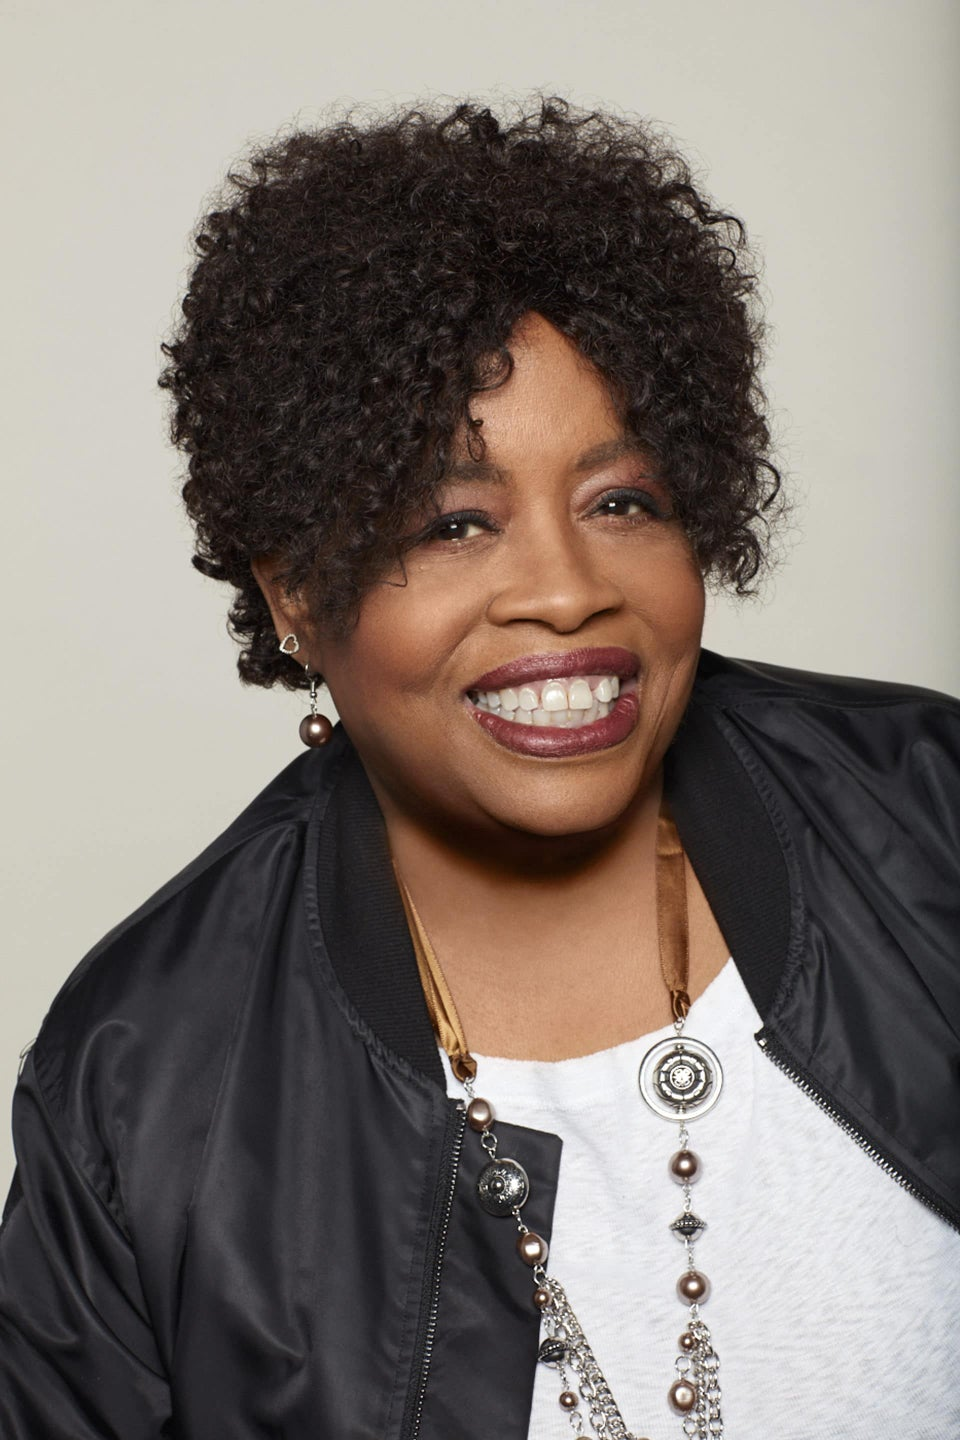 Writer, Producer And Mentor Eunetta Boone Passes Away At 63